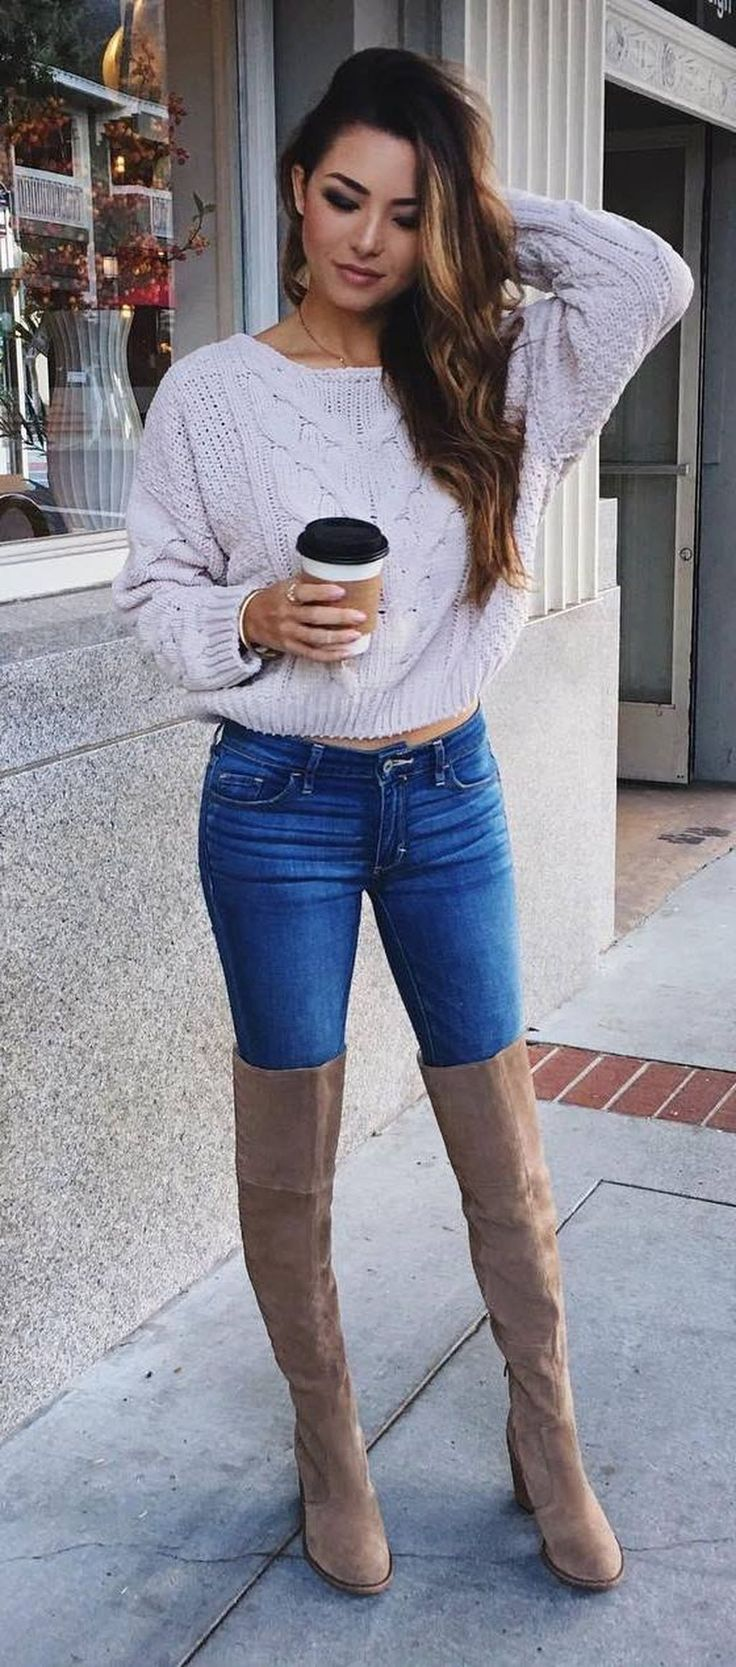 Best 25+ Outfits with boots ideas on Pinterest | Country style ...